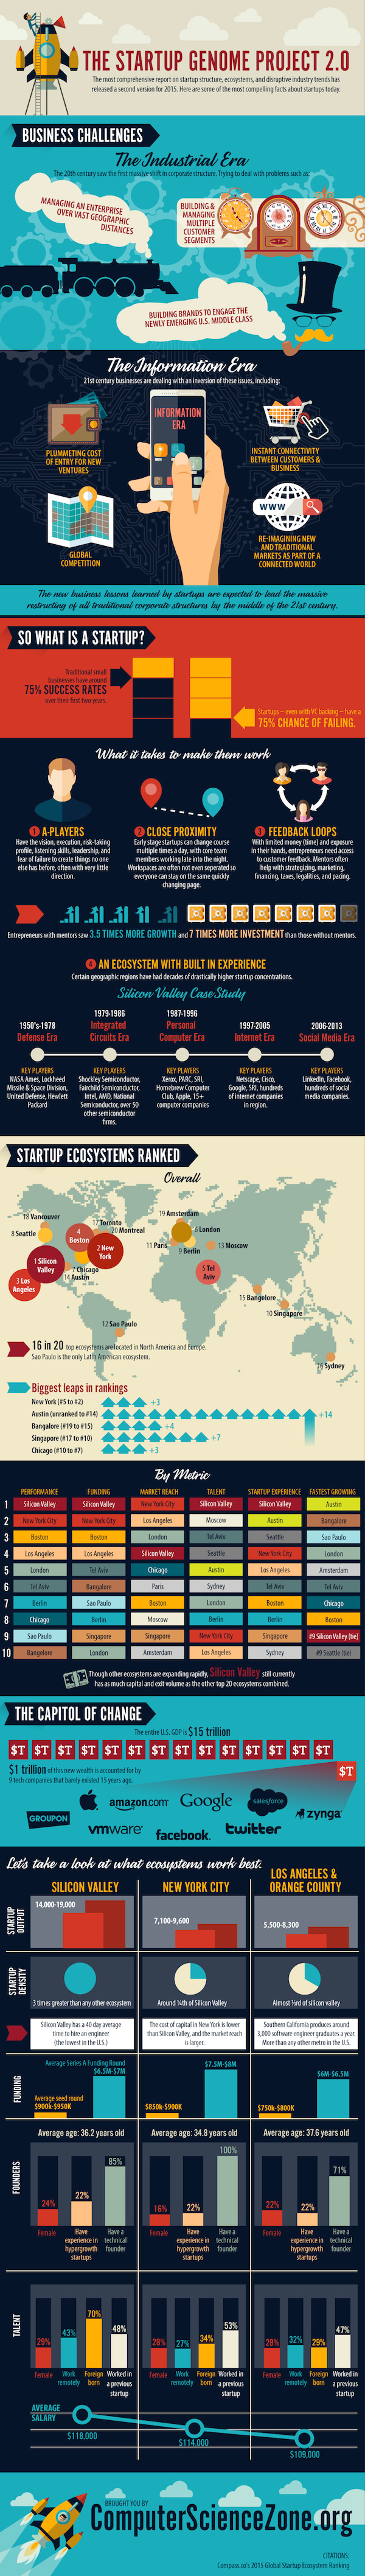 Startup-Genome 2.0 infographic